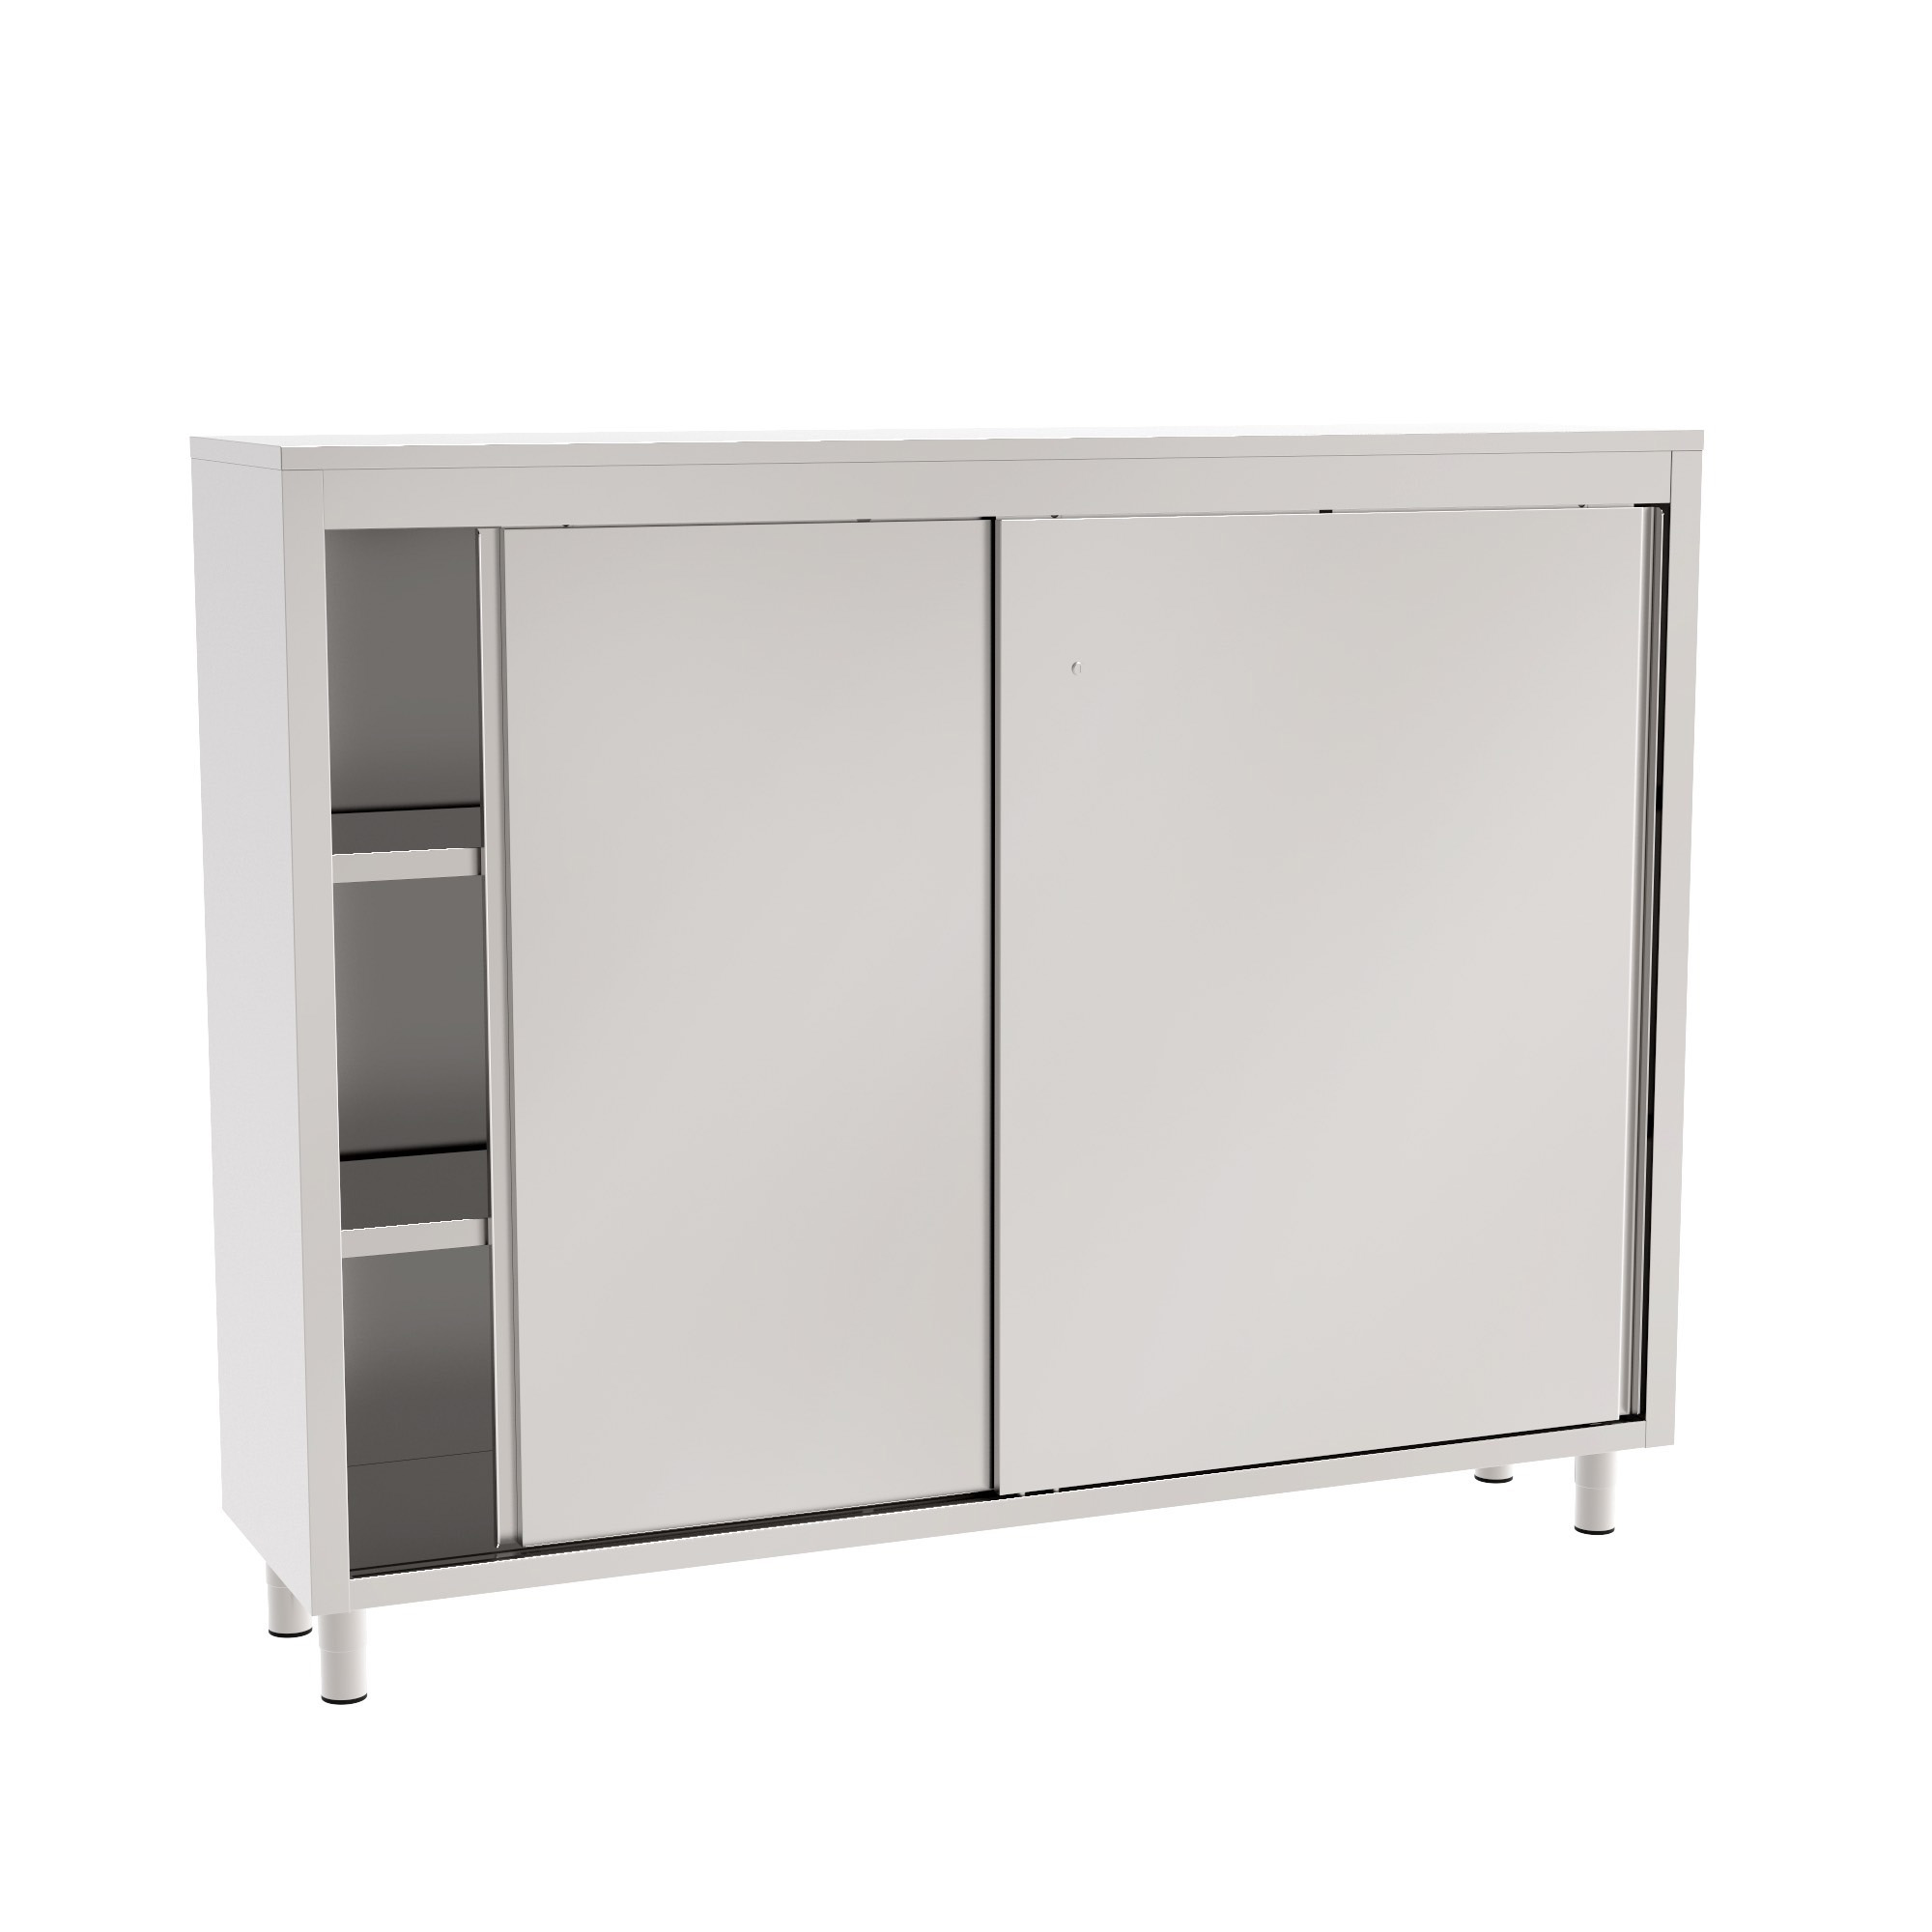 Storage Cabinet With Sliding Doors And